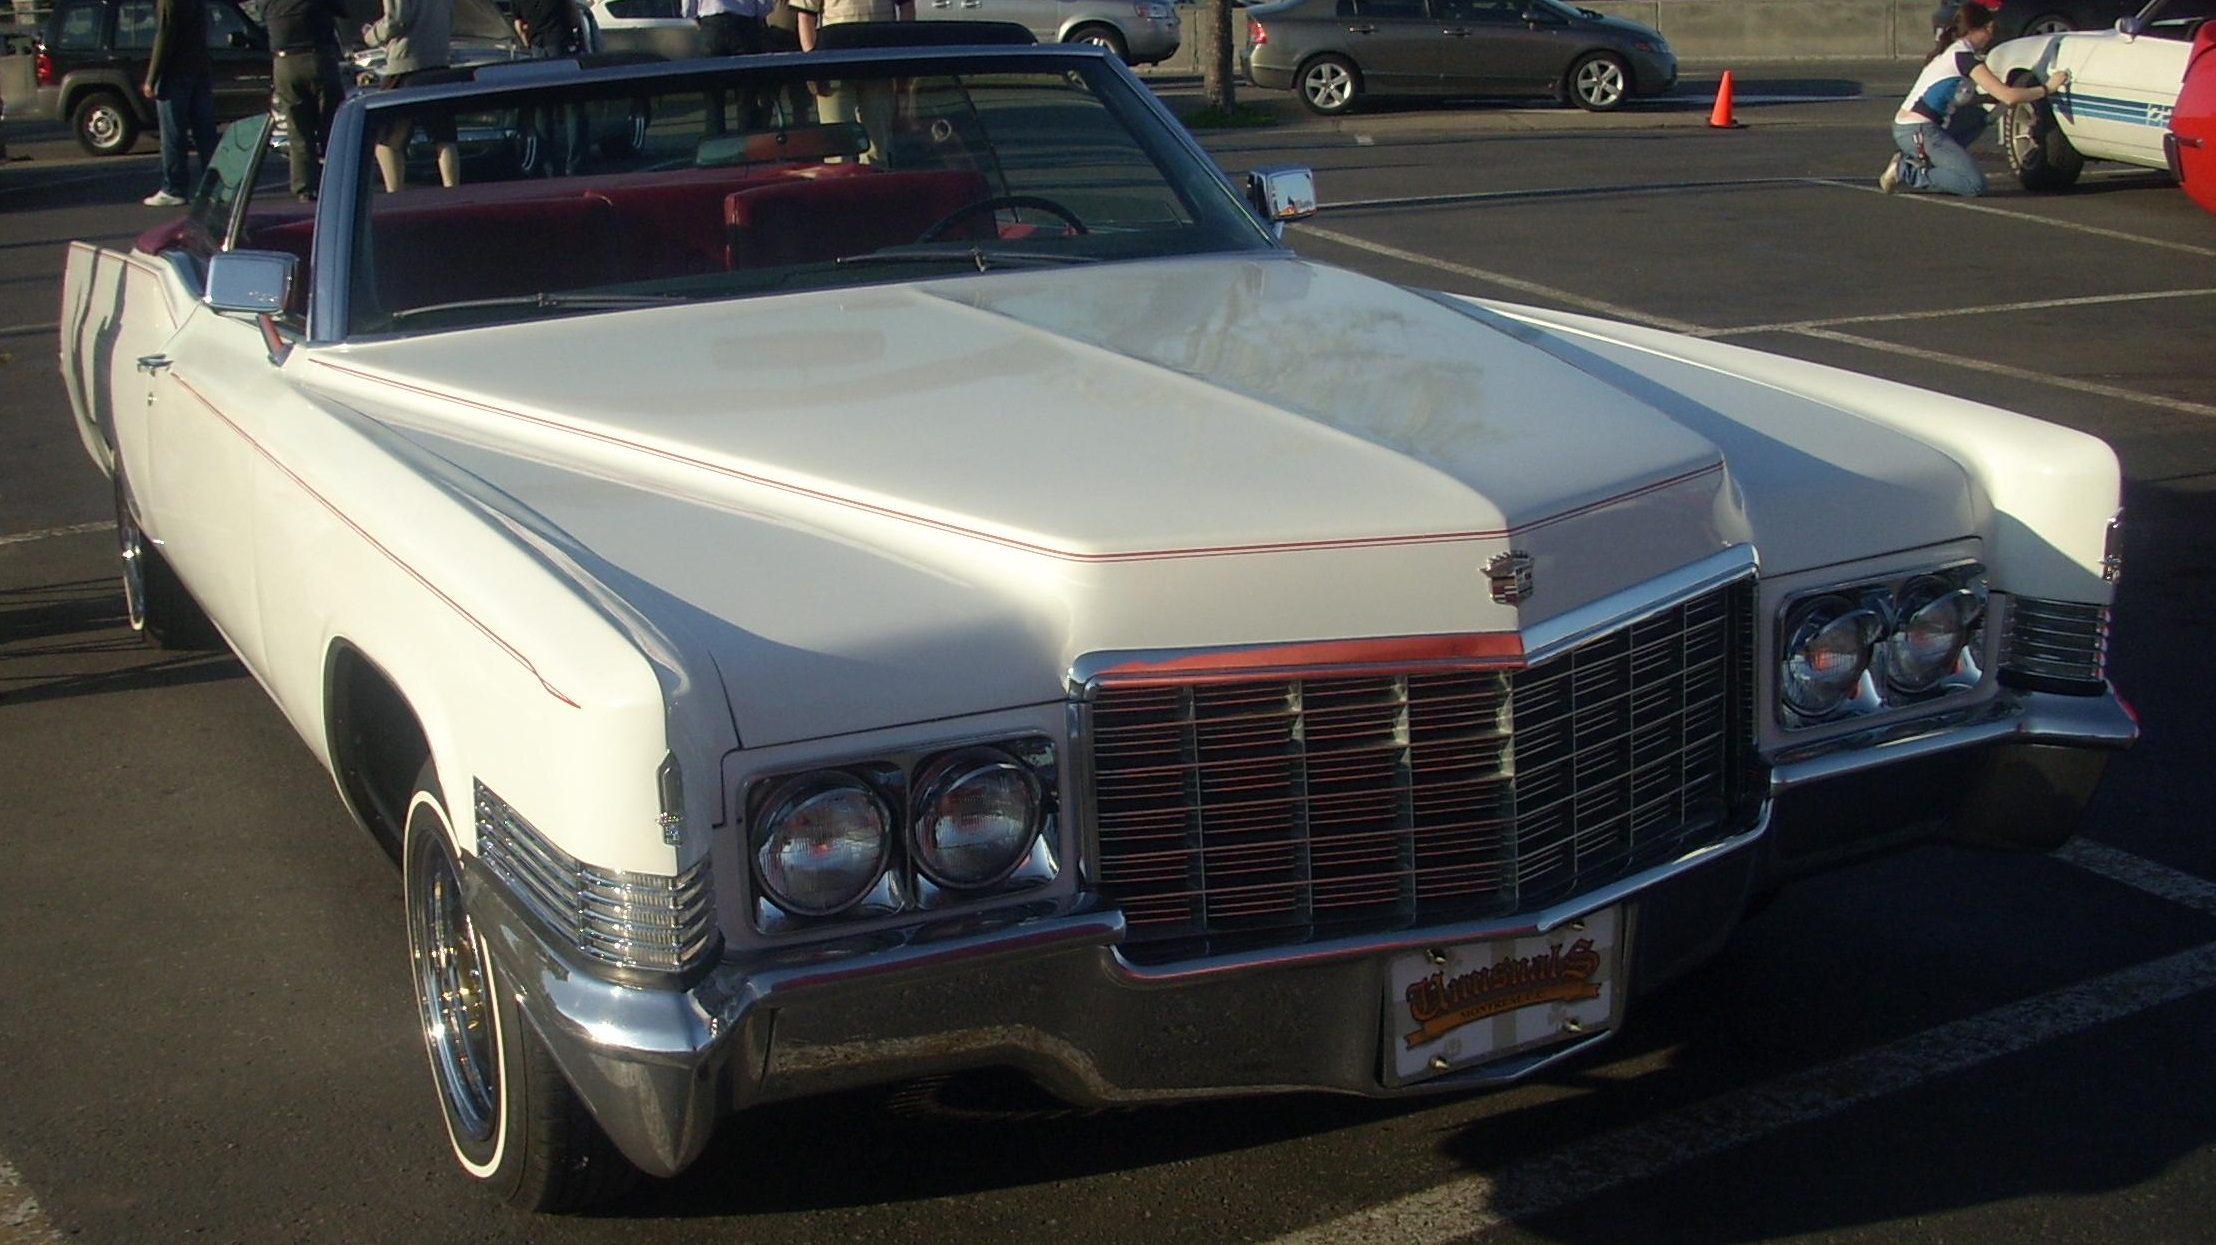 70 Cadillac Convertible http://commons.wikimedia.org/wiki/File:%2770_Cadillac_Convertible_(Orange_Julep_%2708).jpg